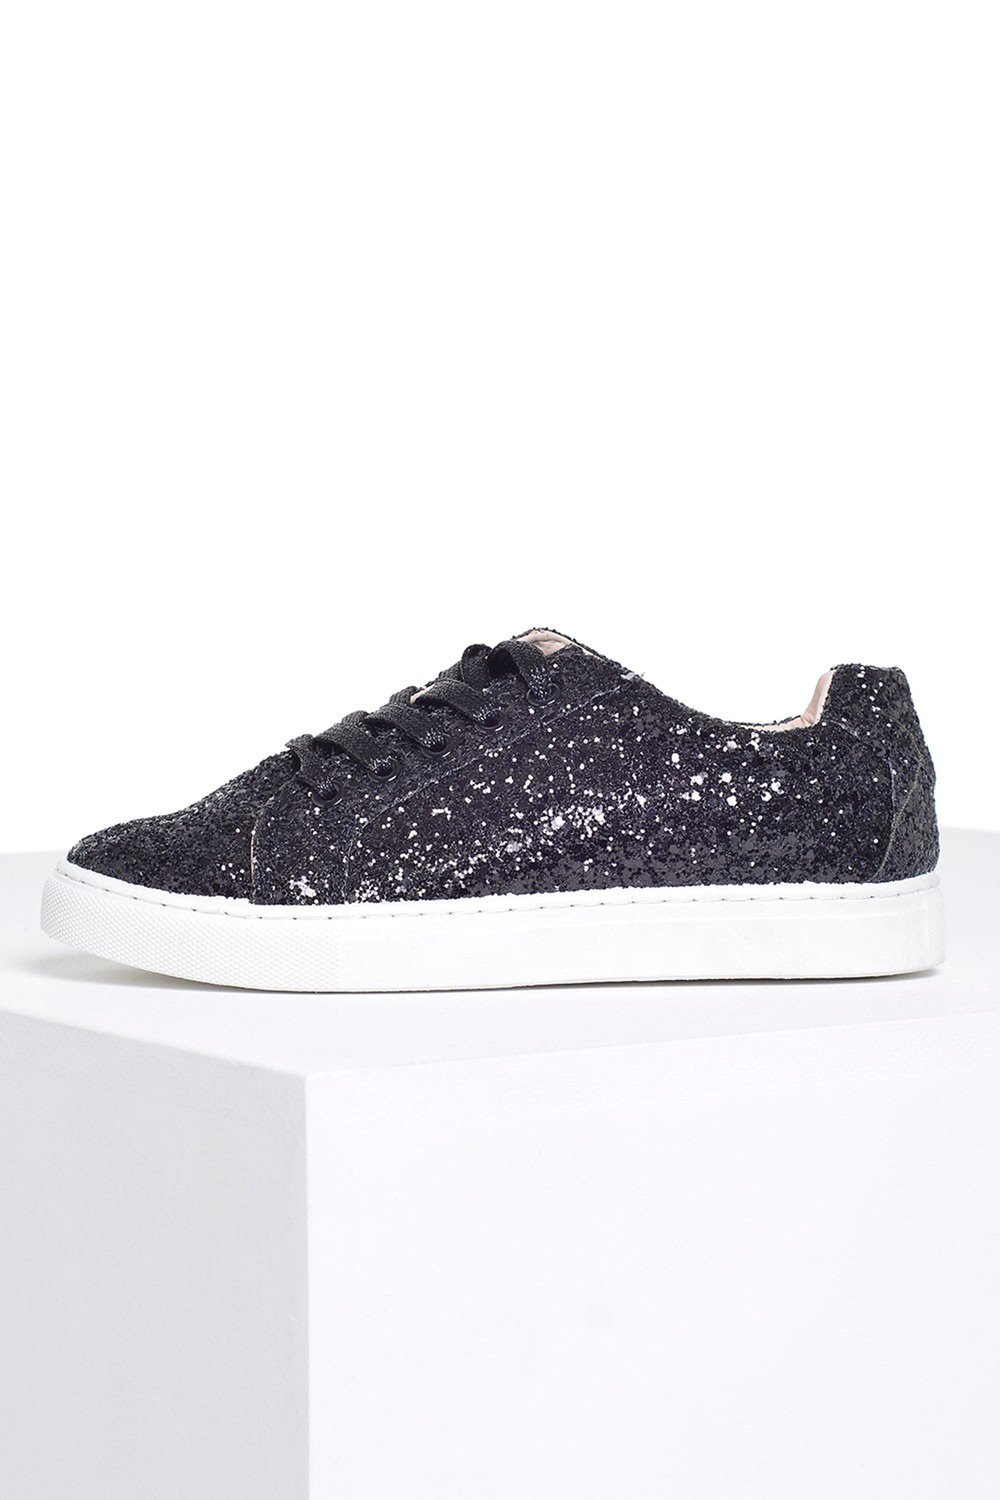 Jollie Glitter Lace Up Runners in Black  - €11.95_£10.60 - iclothing.com.jpg